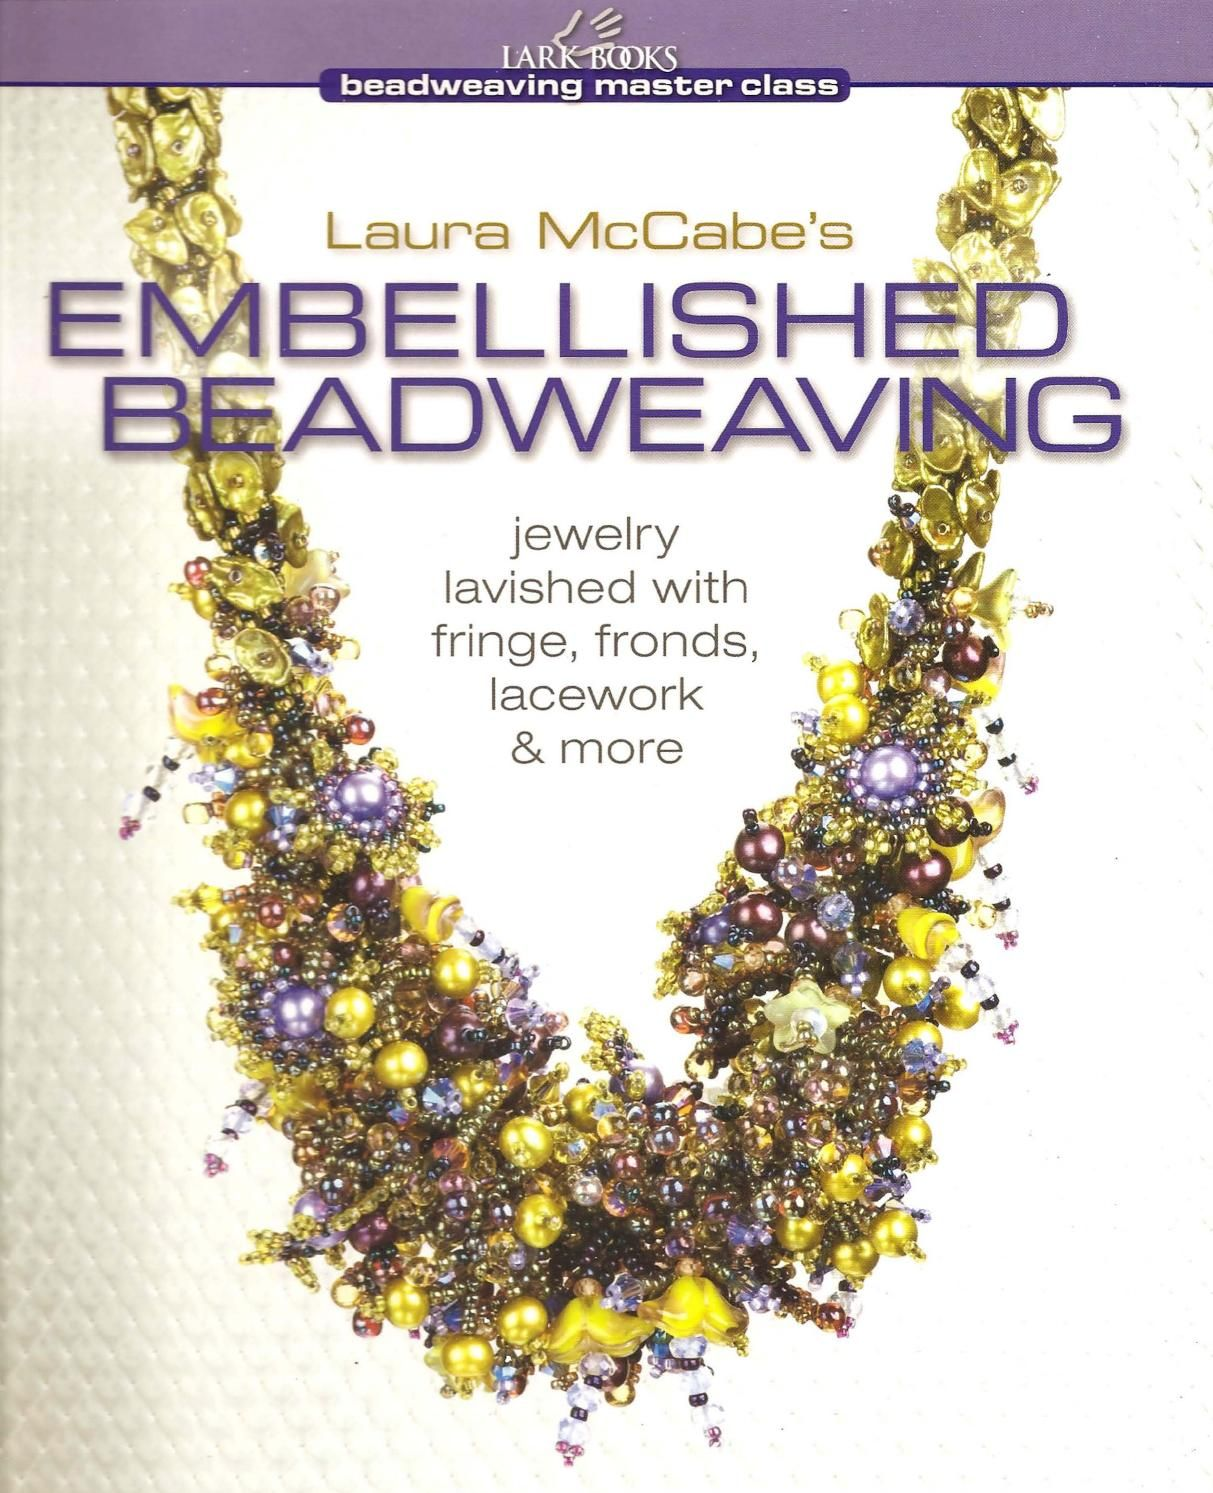 Embellished Beadweaving By Laura Mccabe Beadind Books Schmuck